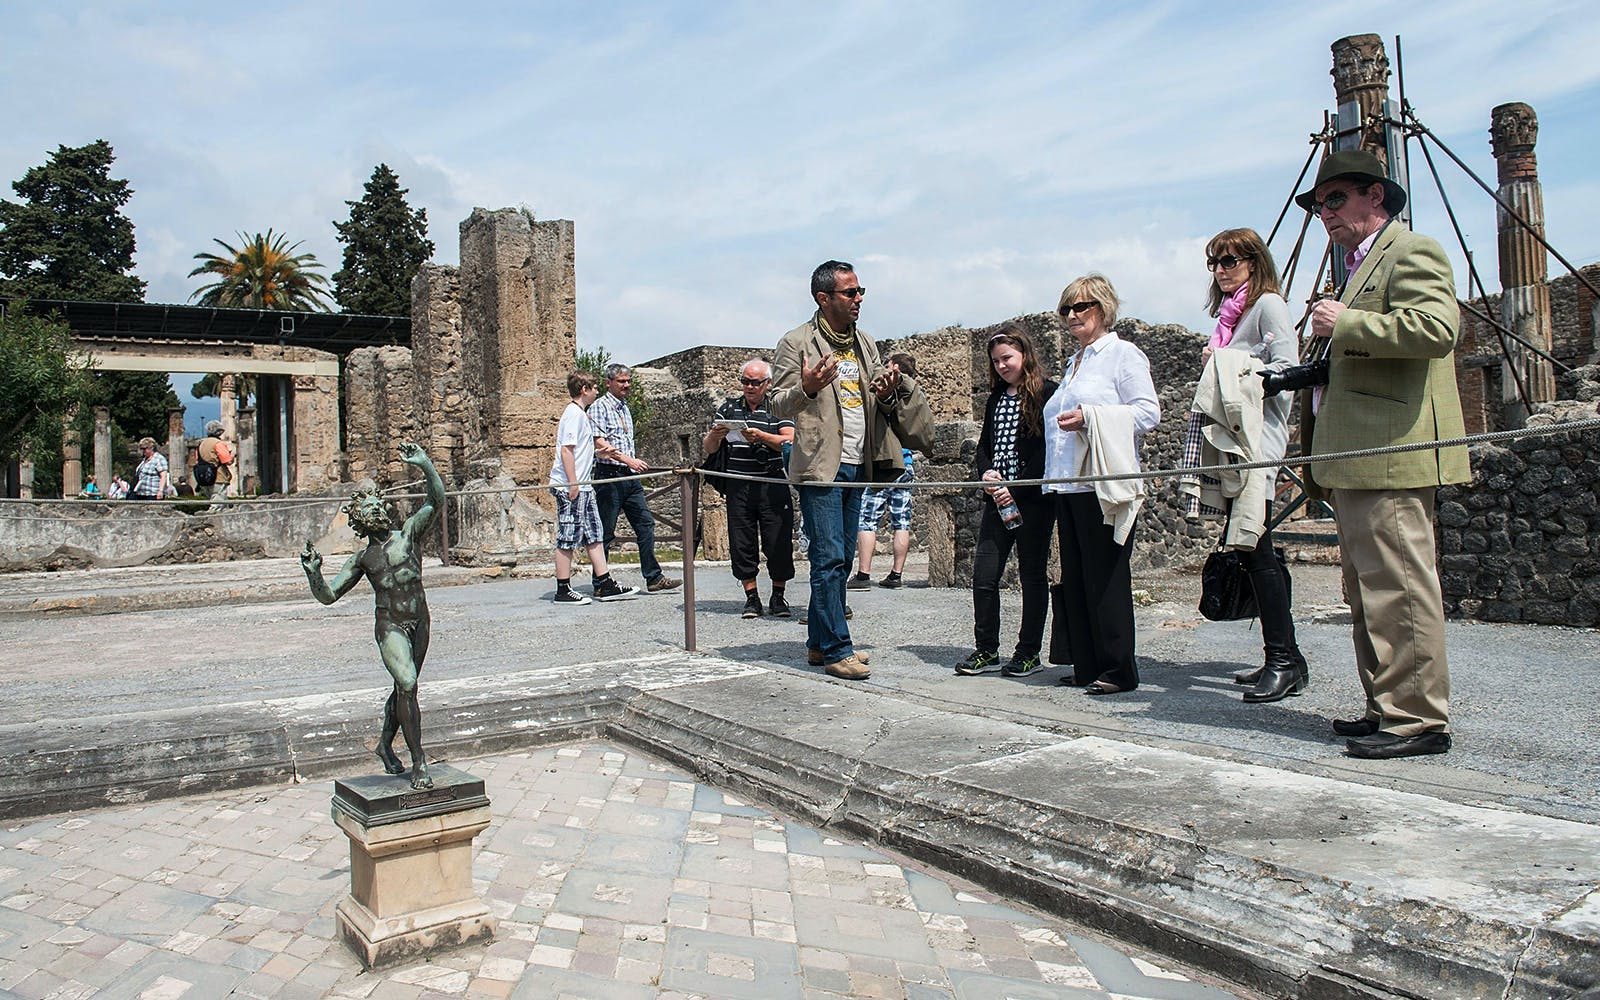 Pompeii Excavations and Naples Full Day Tour